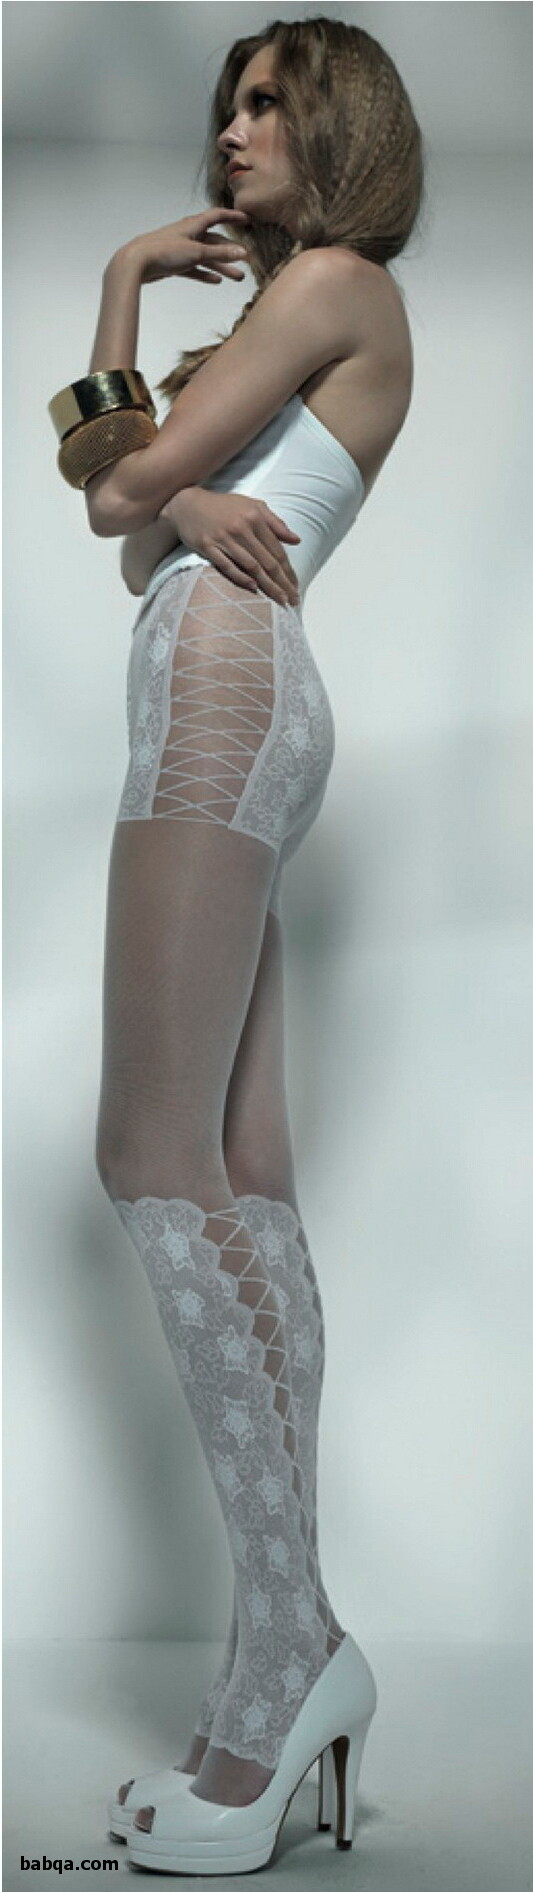 mens silk stockings and classy garter belt